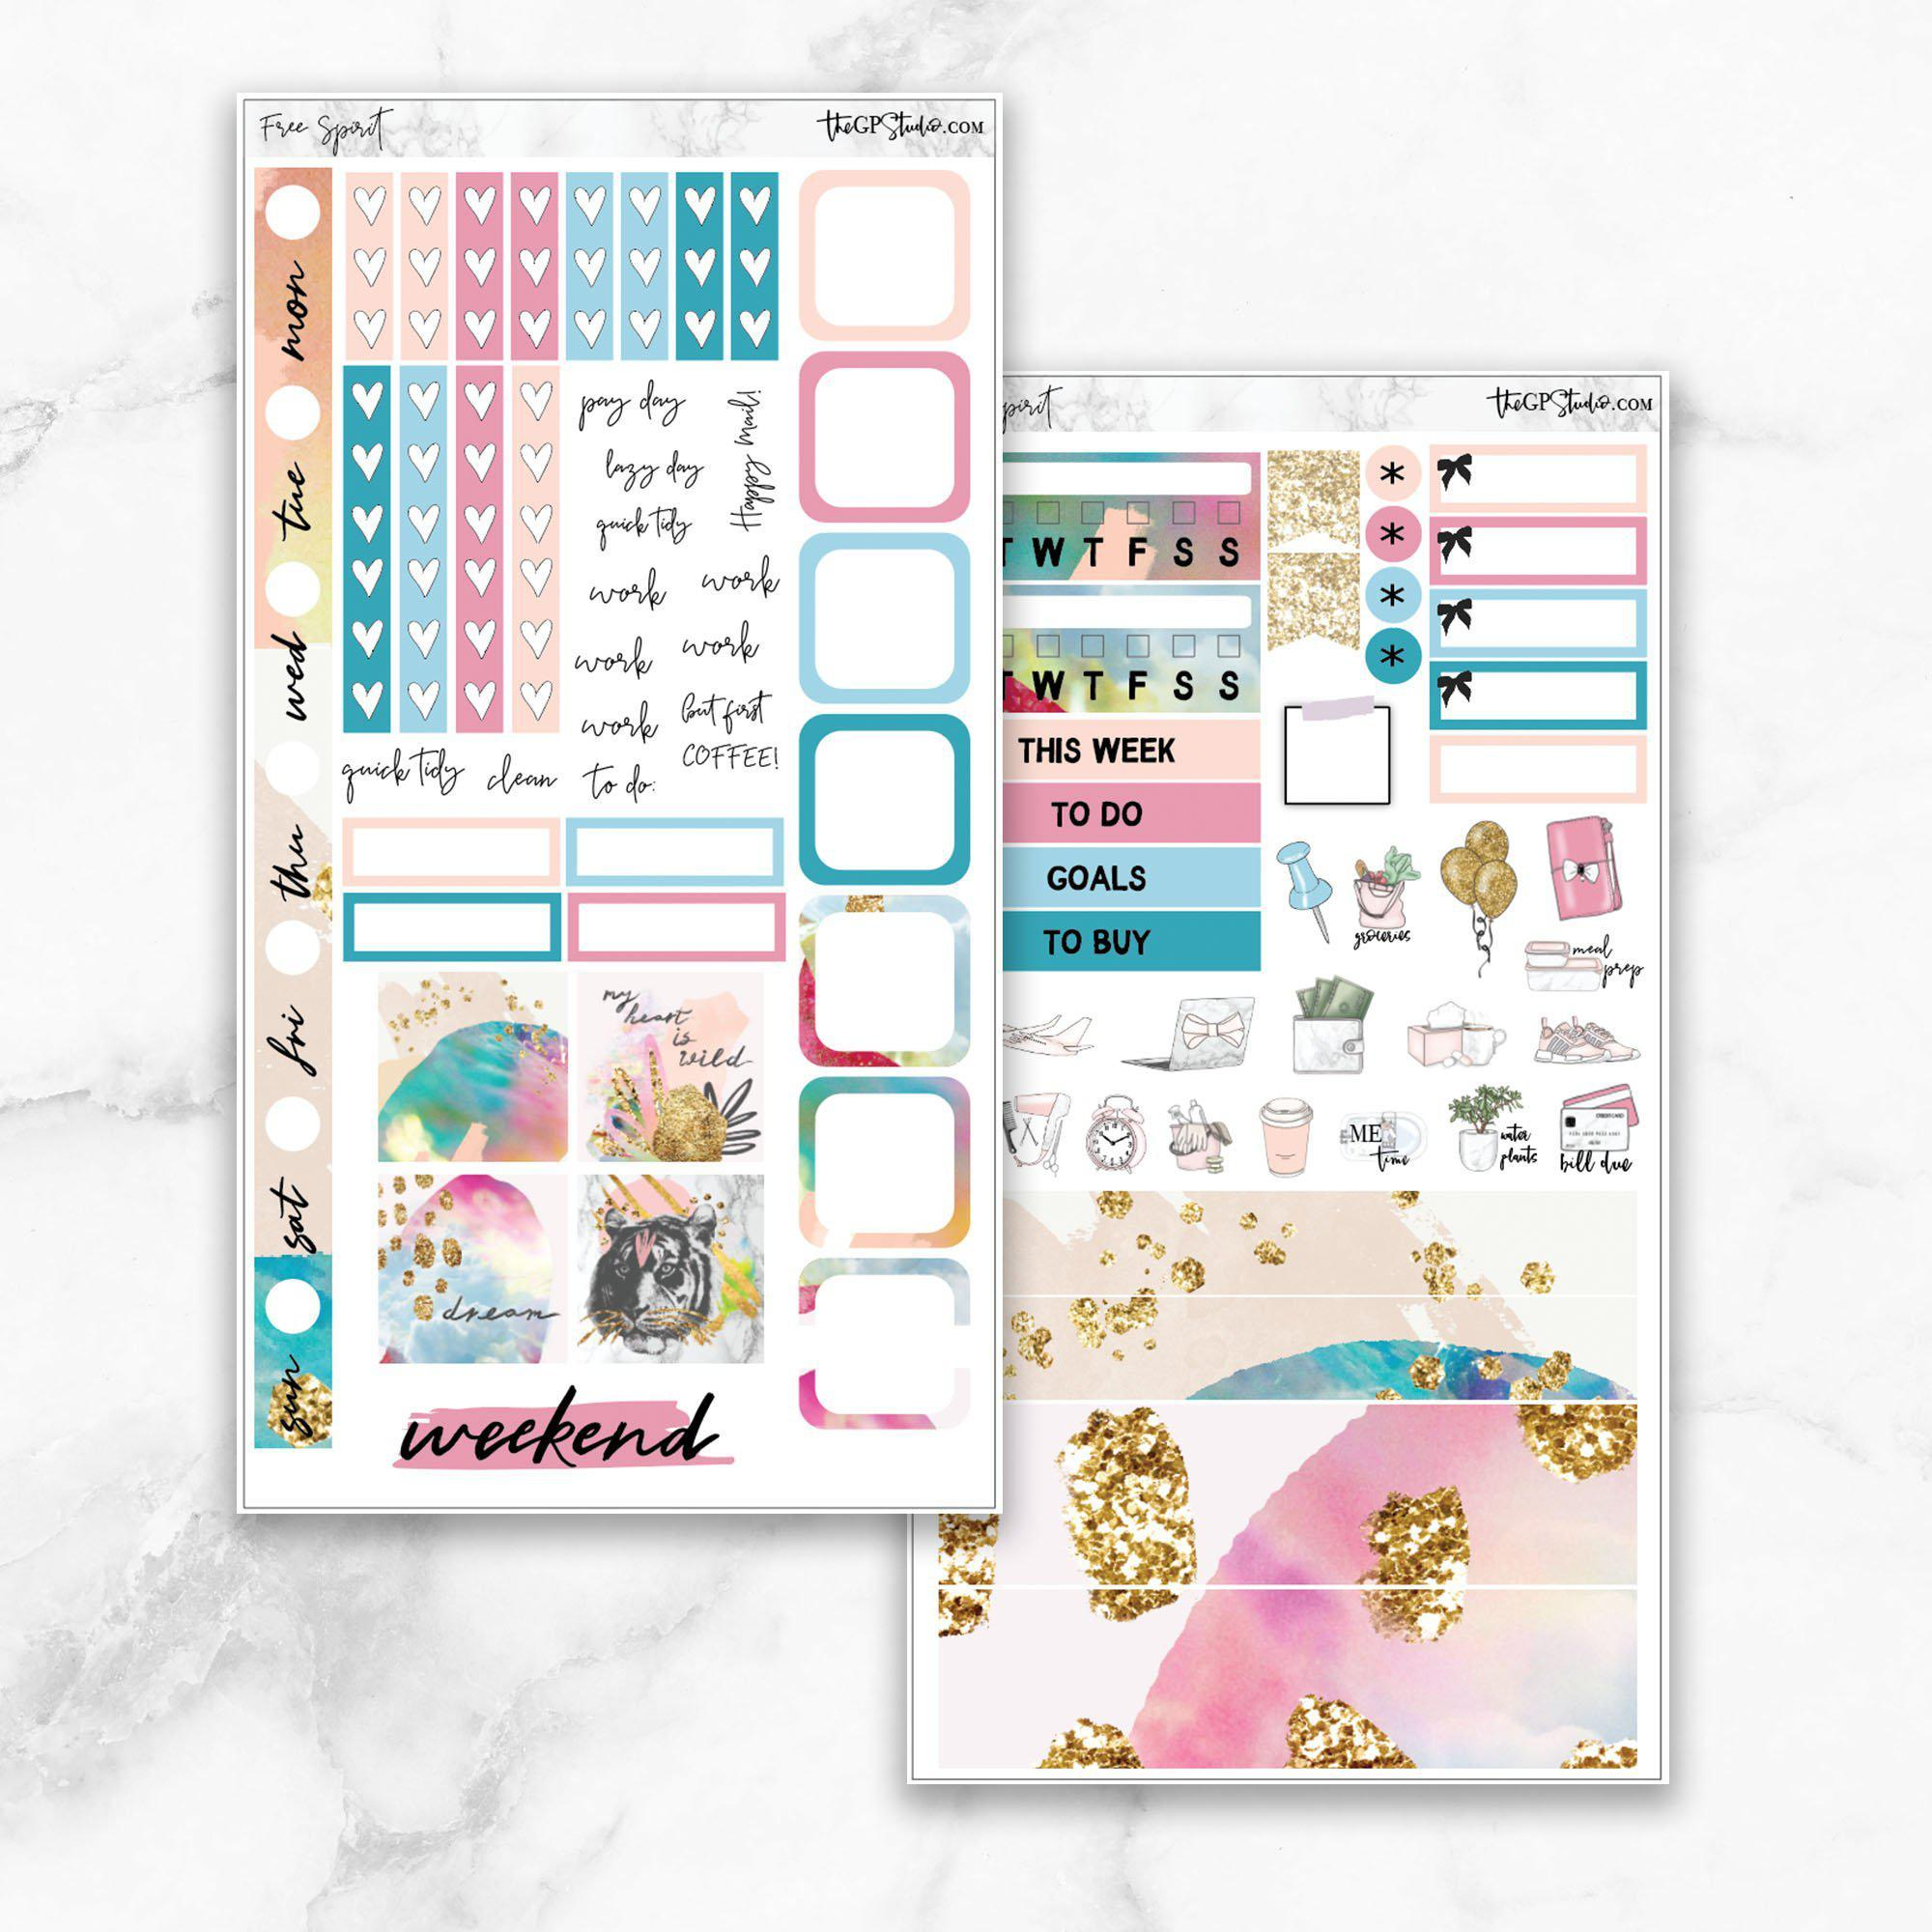 FREE SPIRIT Hobonichi Weekly Size Planner Sticker Kit-The GP Studio